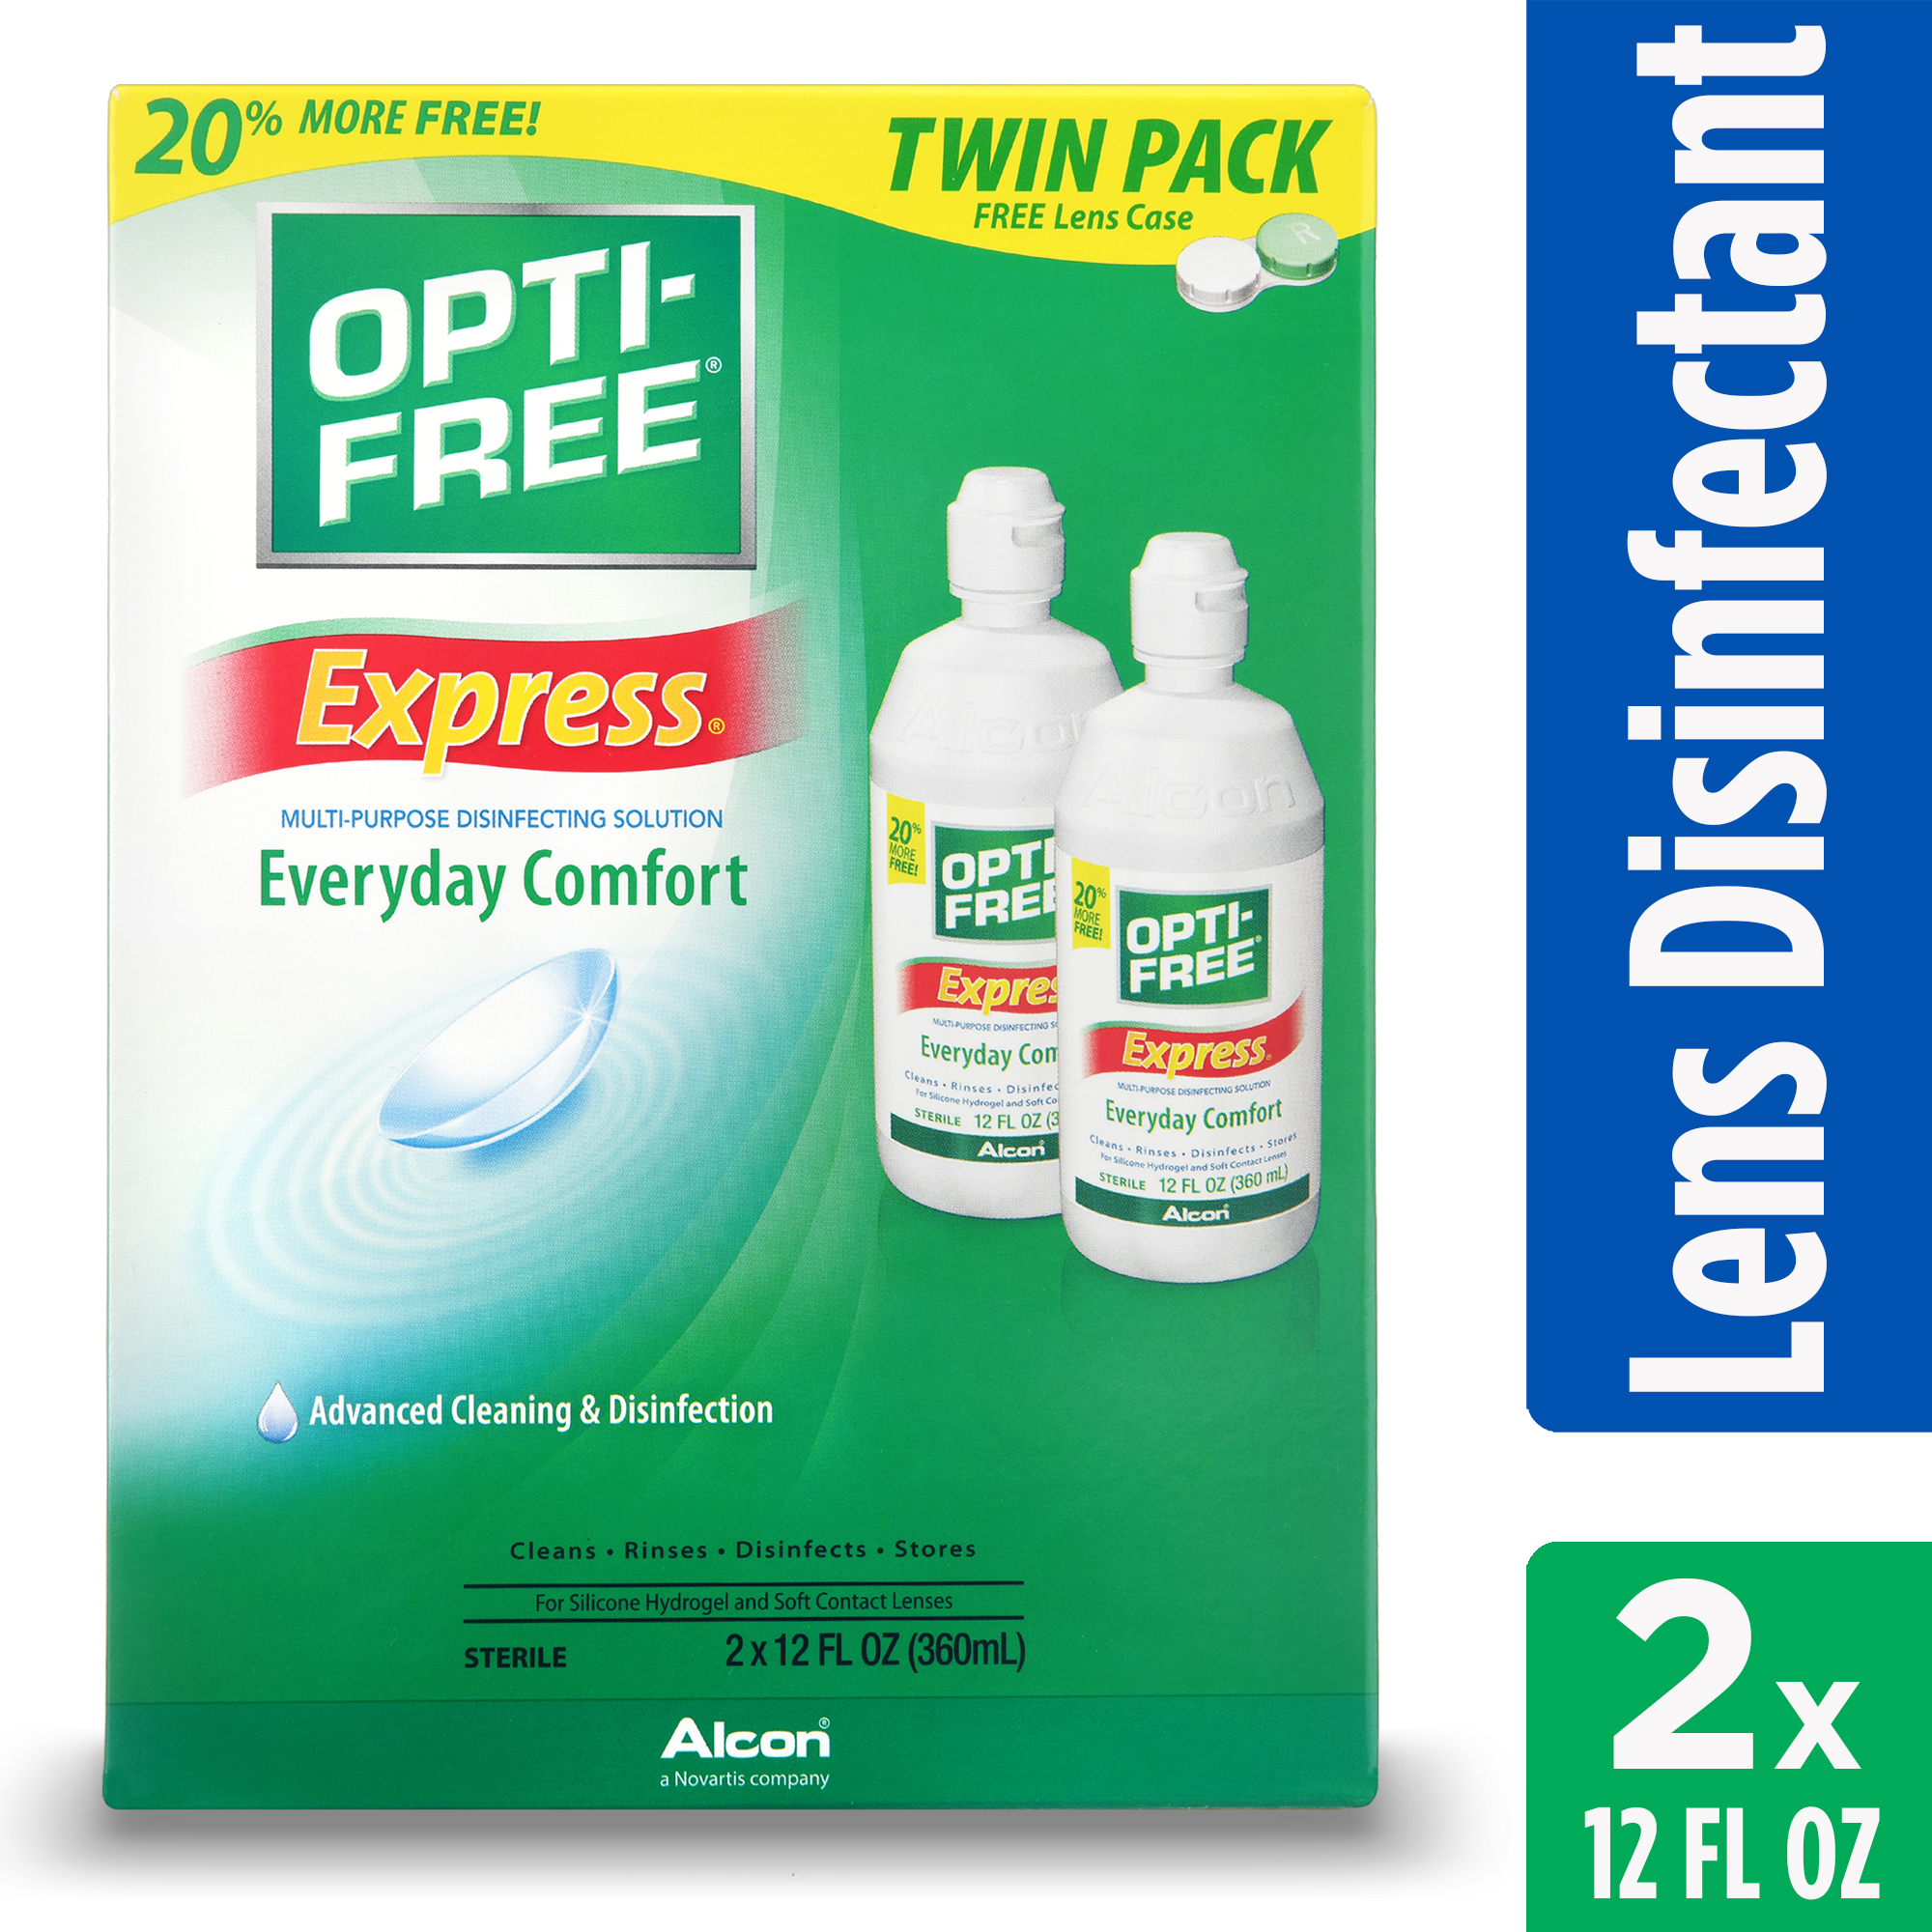 Opti-Free Express Everyday Comfort Multi-Purpose Disinfecting Solution, 2 x 12 Fl Oz